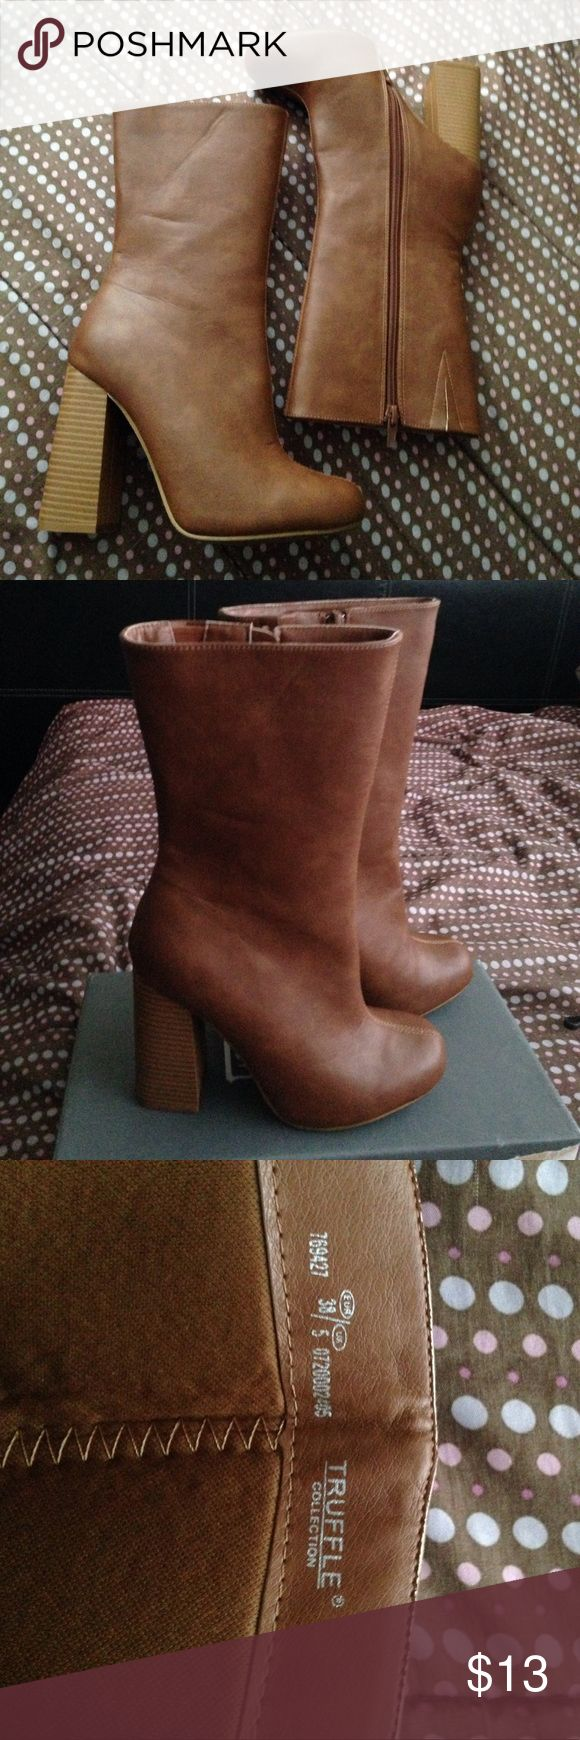 Truffle collection Tall leather brown heeled boot Size U.S 7.5 , has wrinkles from being worn once.  Has a zipper on the side. There too small for me, MUST Go thanks Asos Shoes Heeled Boots